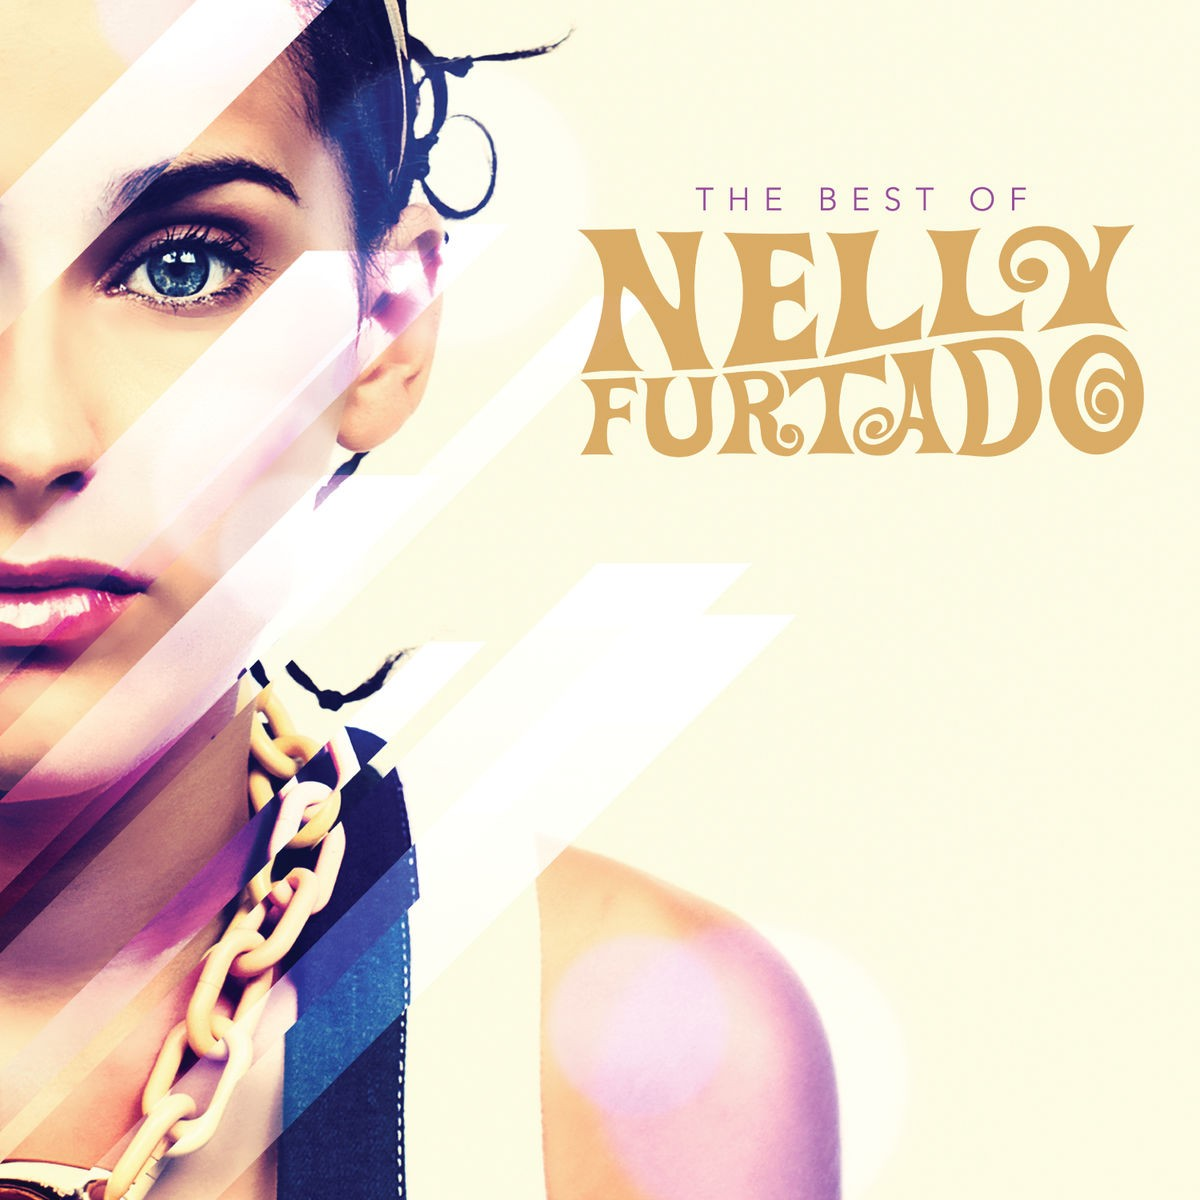 Nelly Furtado - The Best Of Nelly Furtado CD - STARCD 7529